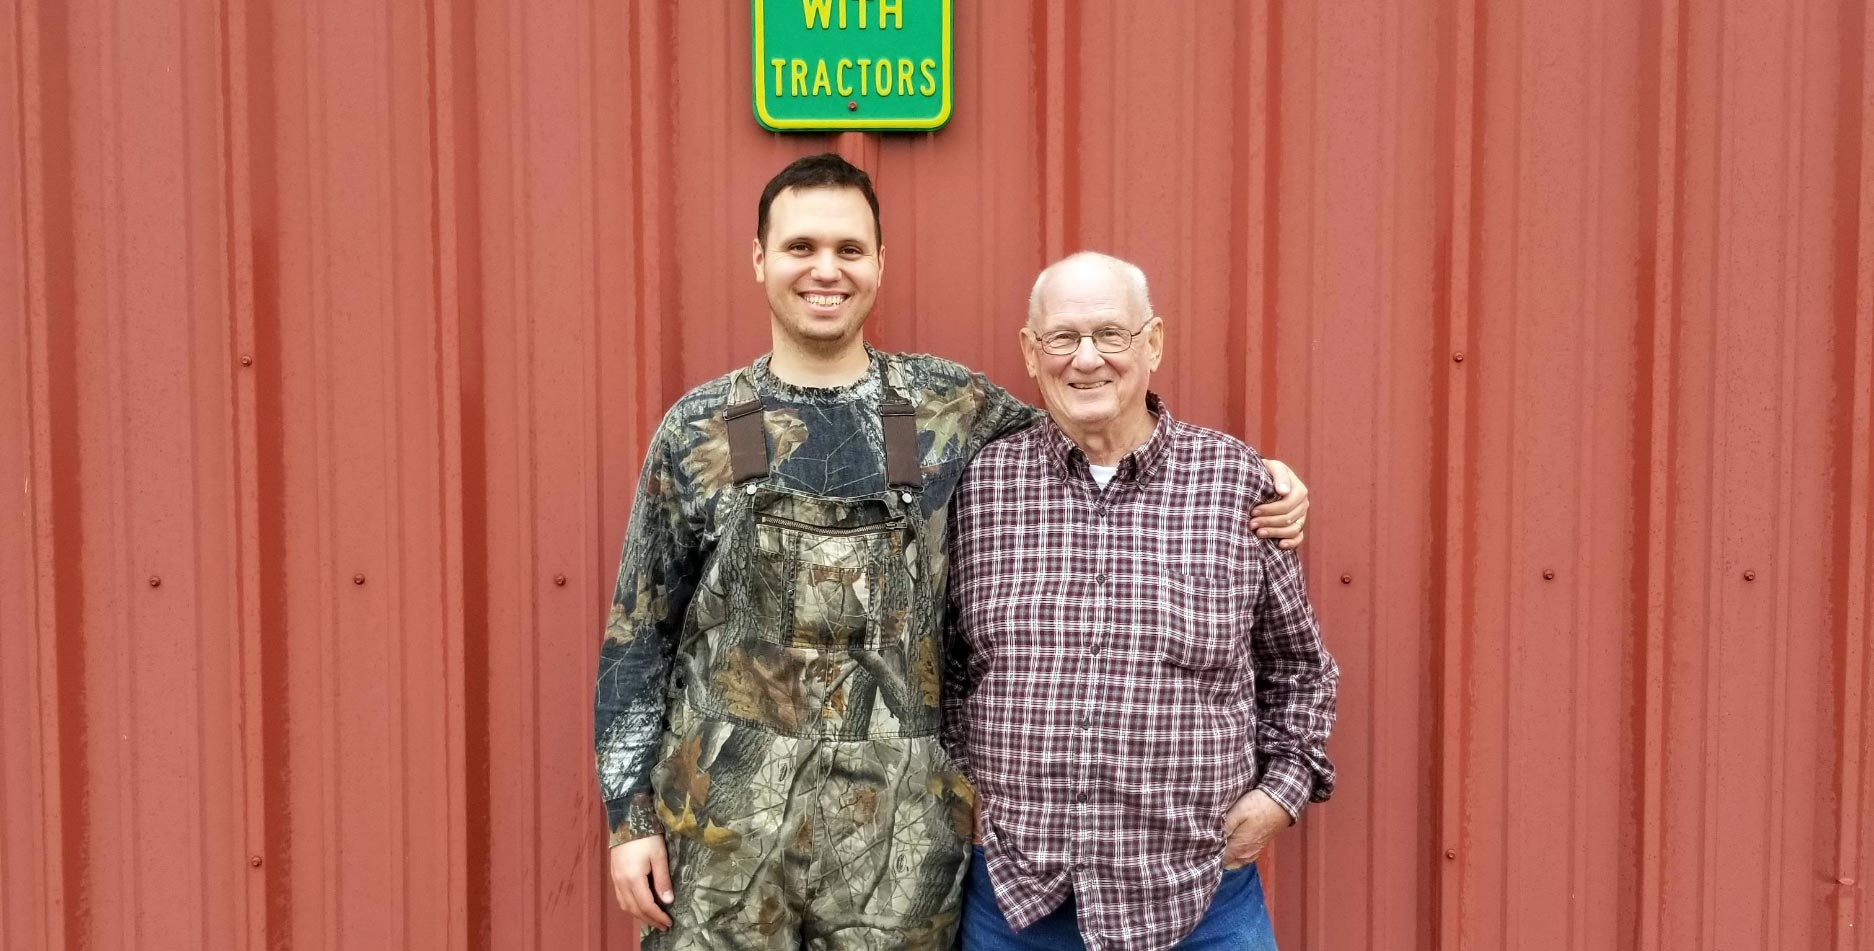 Courtesy photo Senior Airman Michael Fruit, 2nd Space Operations Squadron satellite systems operator, left, and Dan Fruit, Michael's grandfather, smile at their soy bean, wheat and corn farm in Emporia, Kansas, Nov. 14, 2017. The global positioning system has helped increase efficiency and accuracy of planting and cultivating crops at farms like theirs.